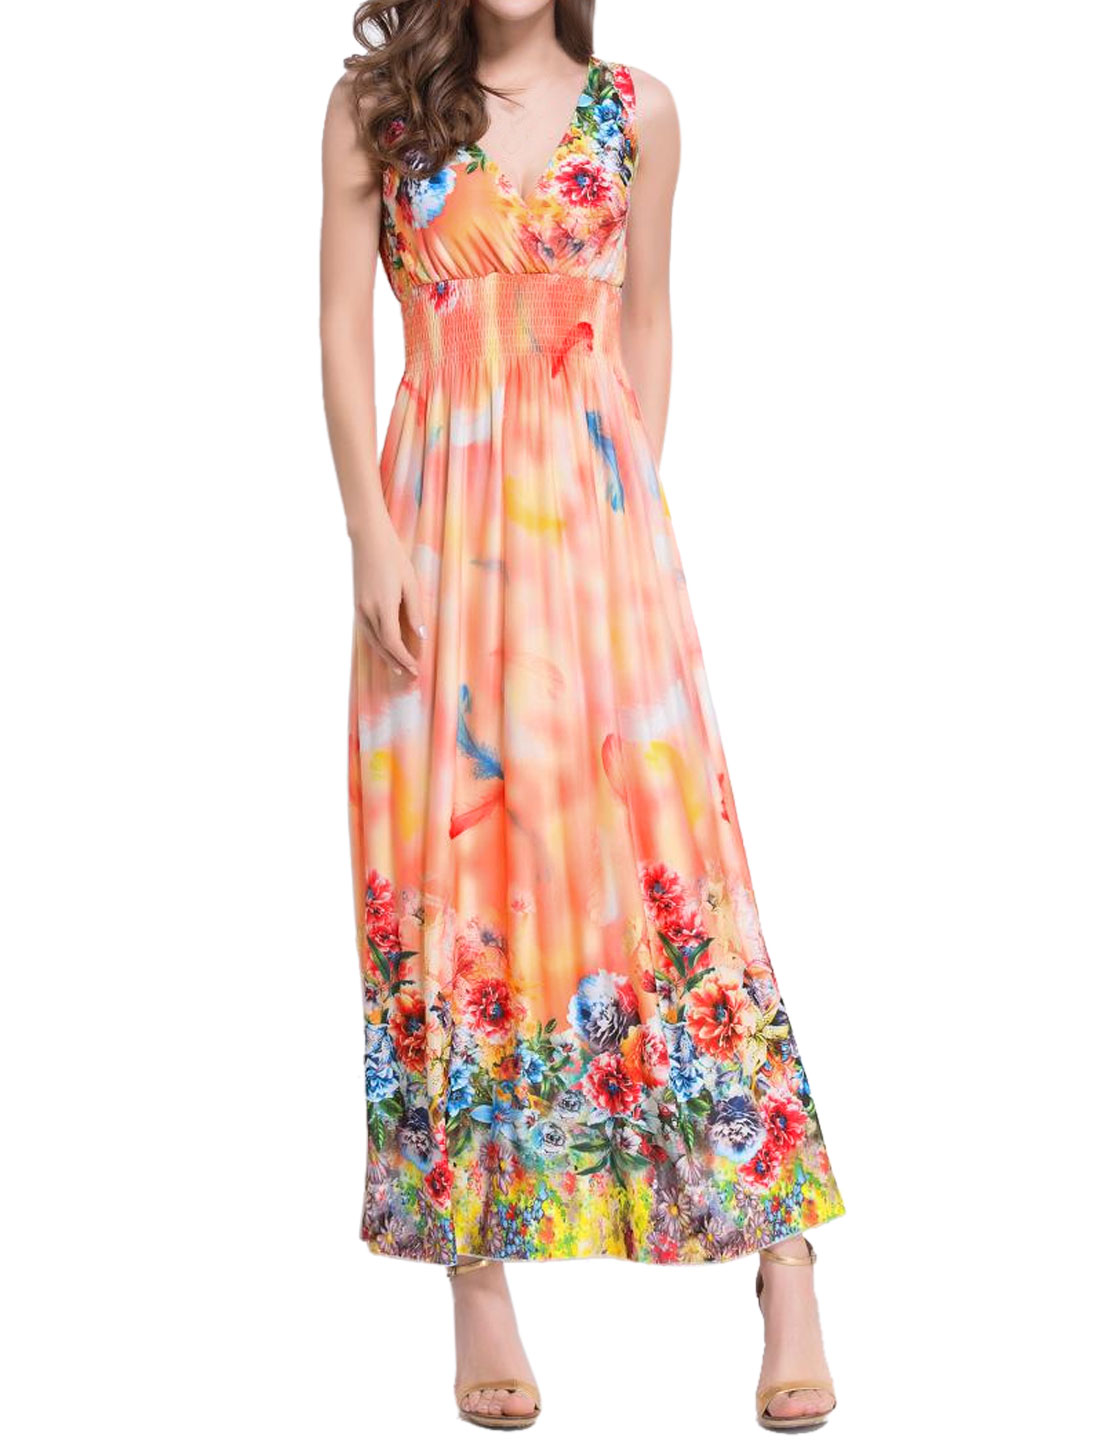 Women Crossover V Neckline Smocked Waist Feathers Floral Maxi Dress Pink S